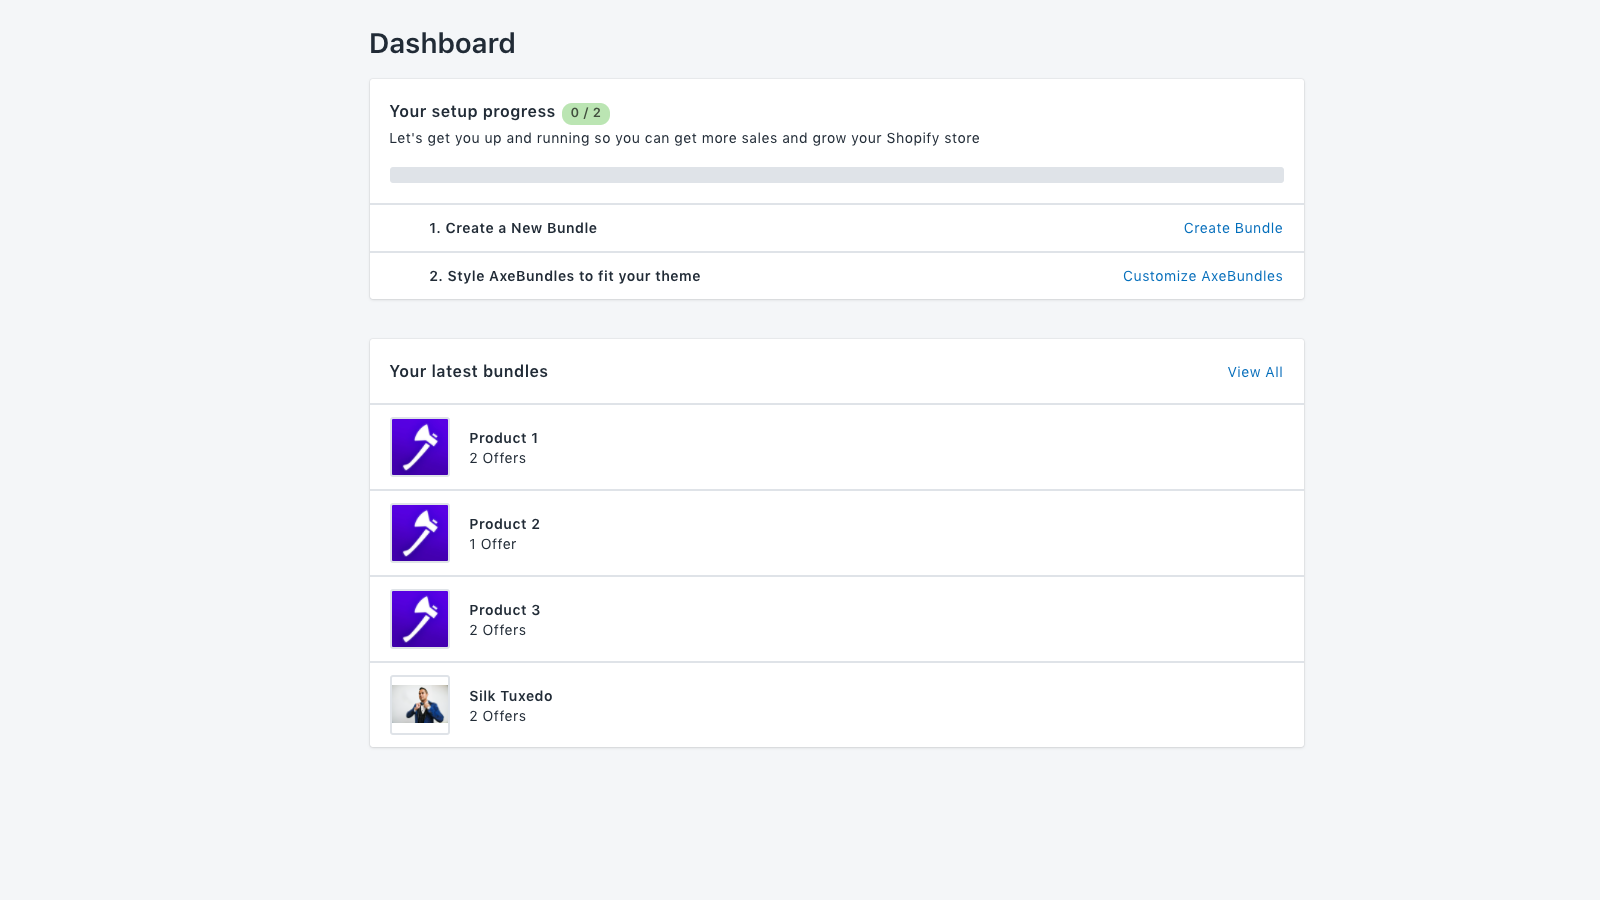 The dashboard allows you to see an overview of your bundles.